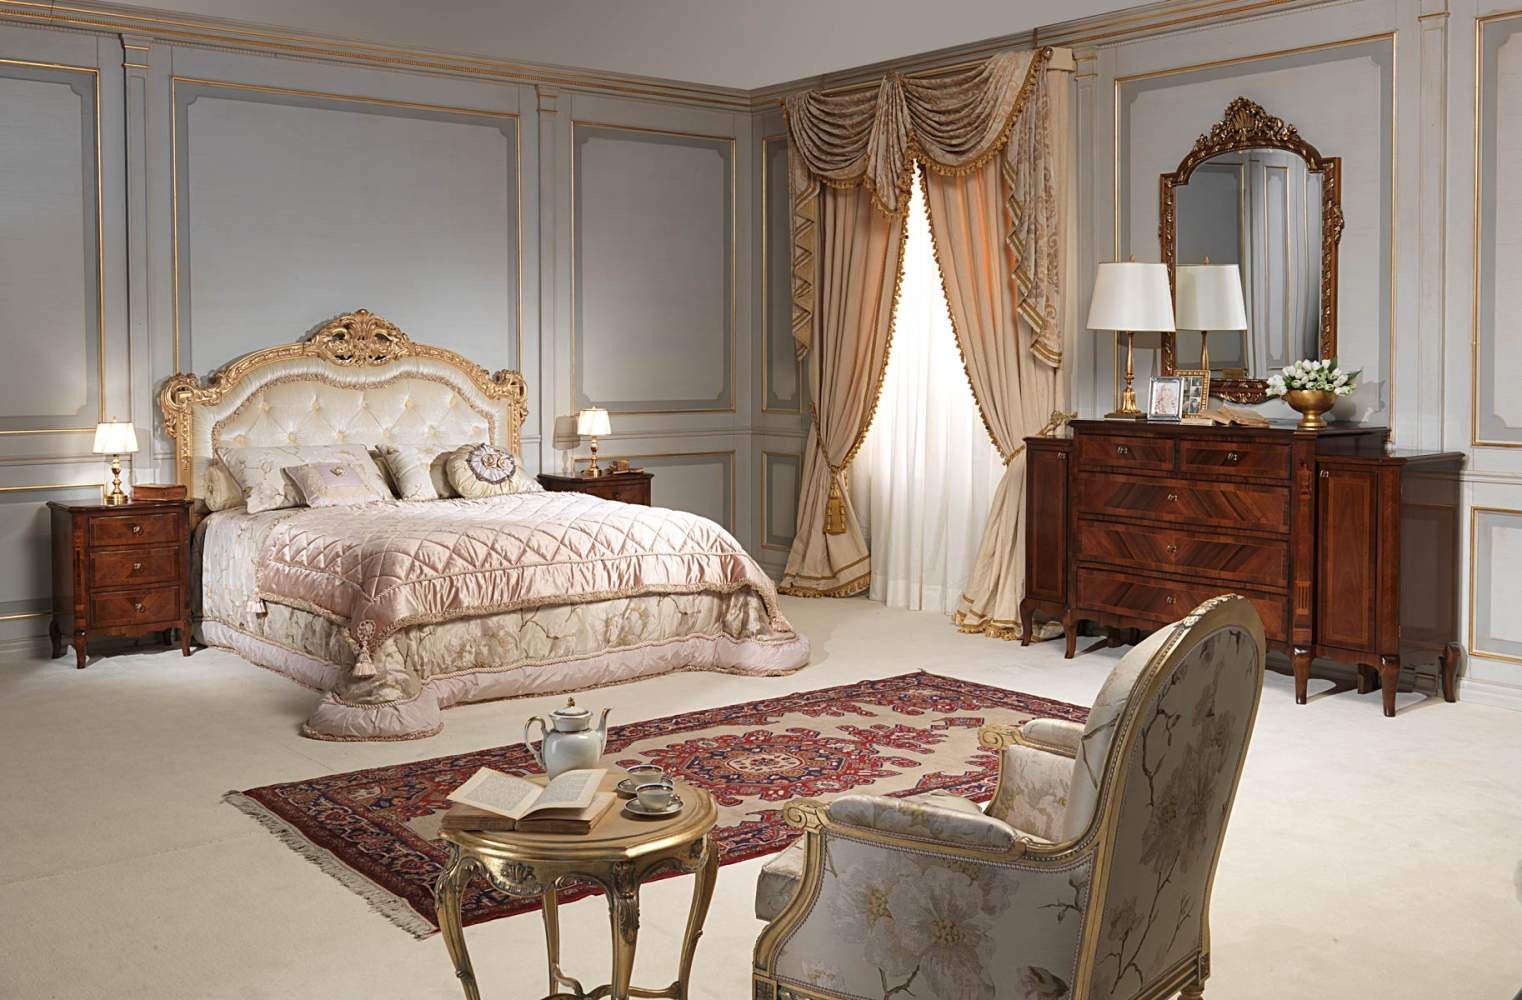 19th century french bedroom, capitonnè bed, chest of drawers with mirror, night tables in walnut